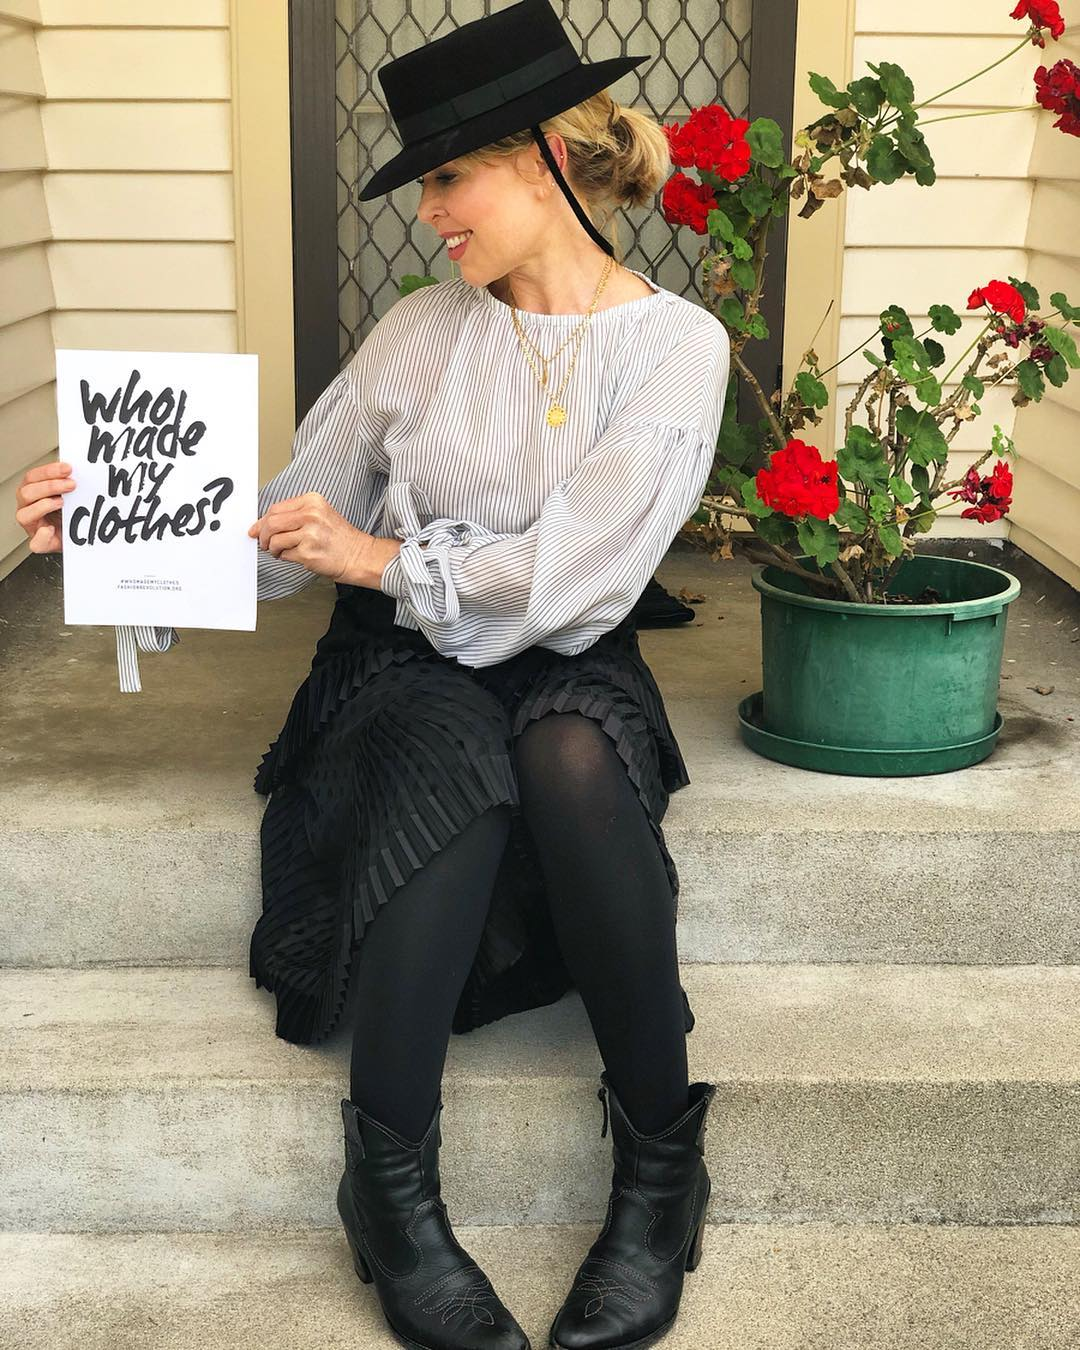 Who made my clothes? The Conscientious Fashionista for Fashion Revolution